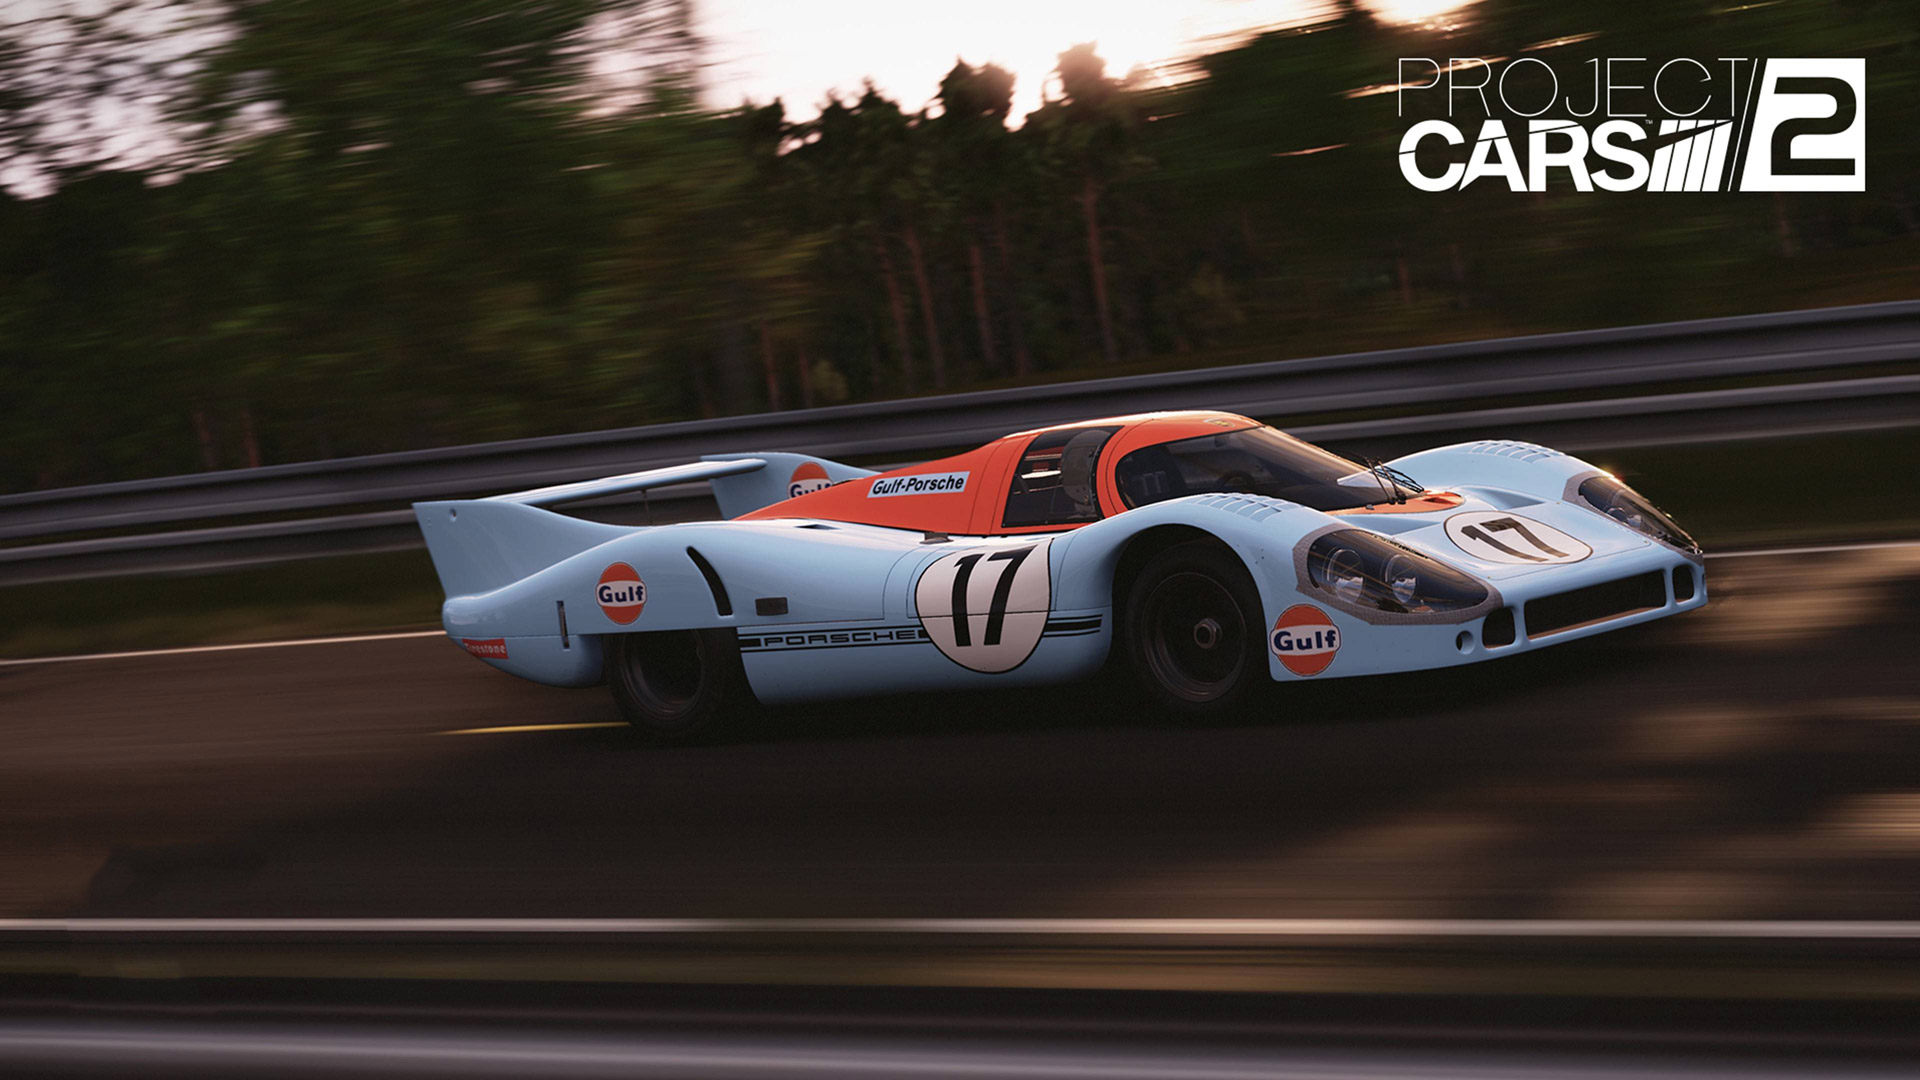 Project Cars 2 Wallpaper in 1920x1080